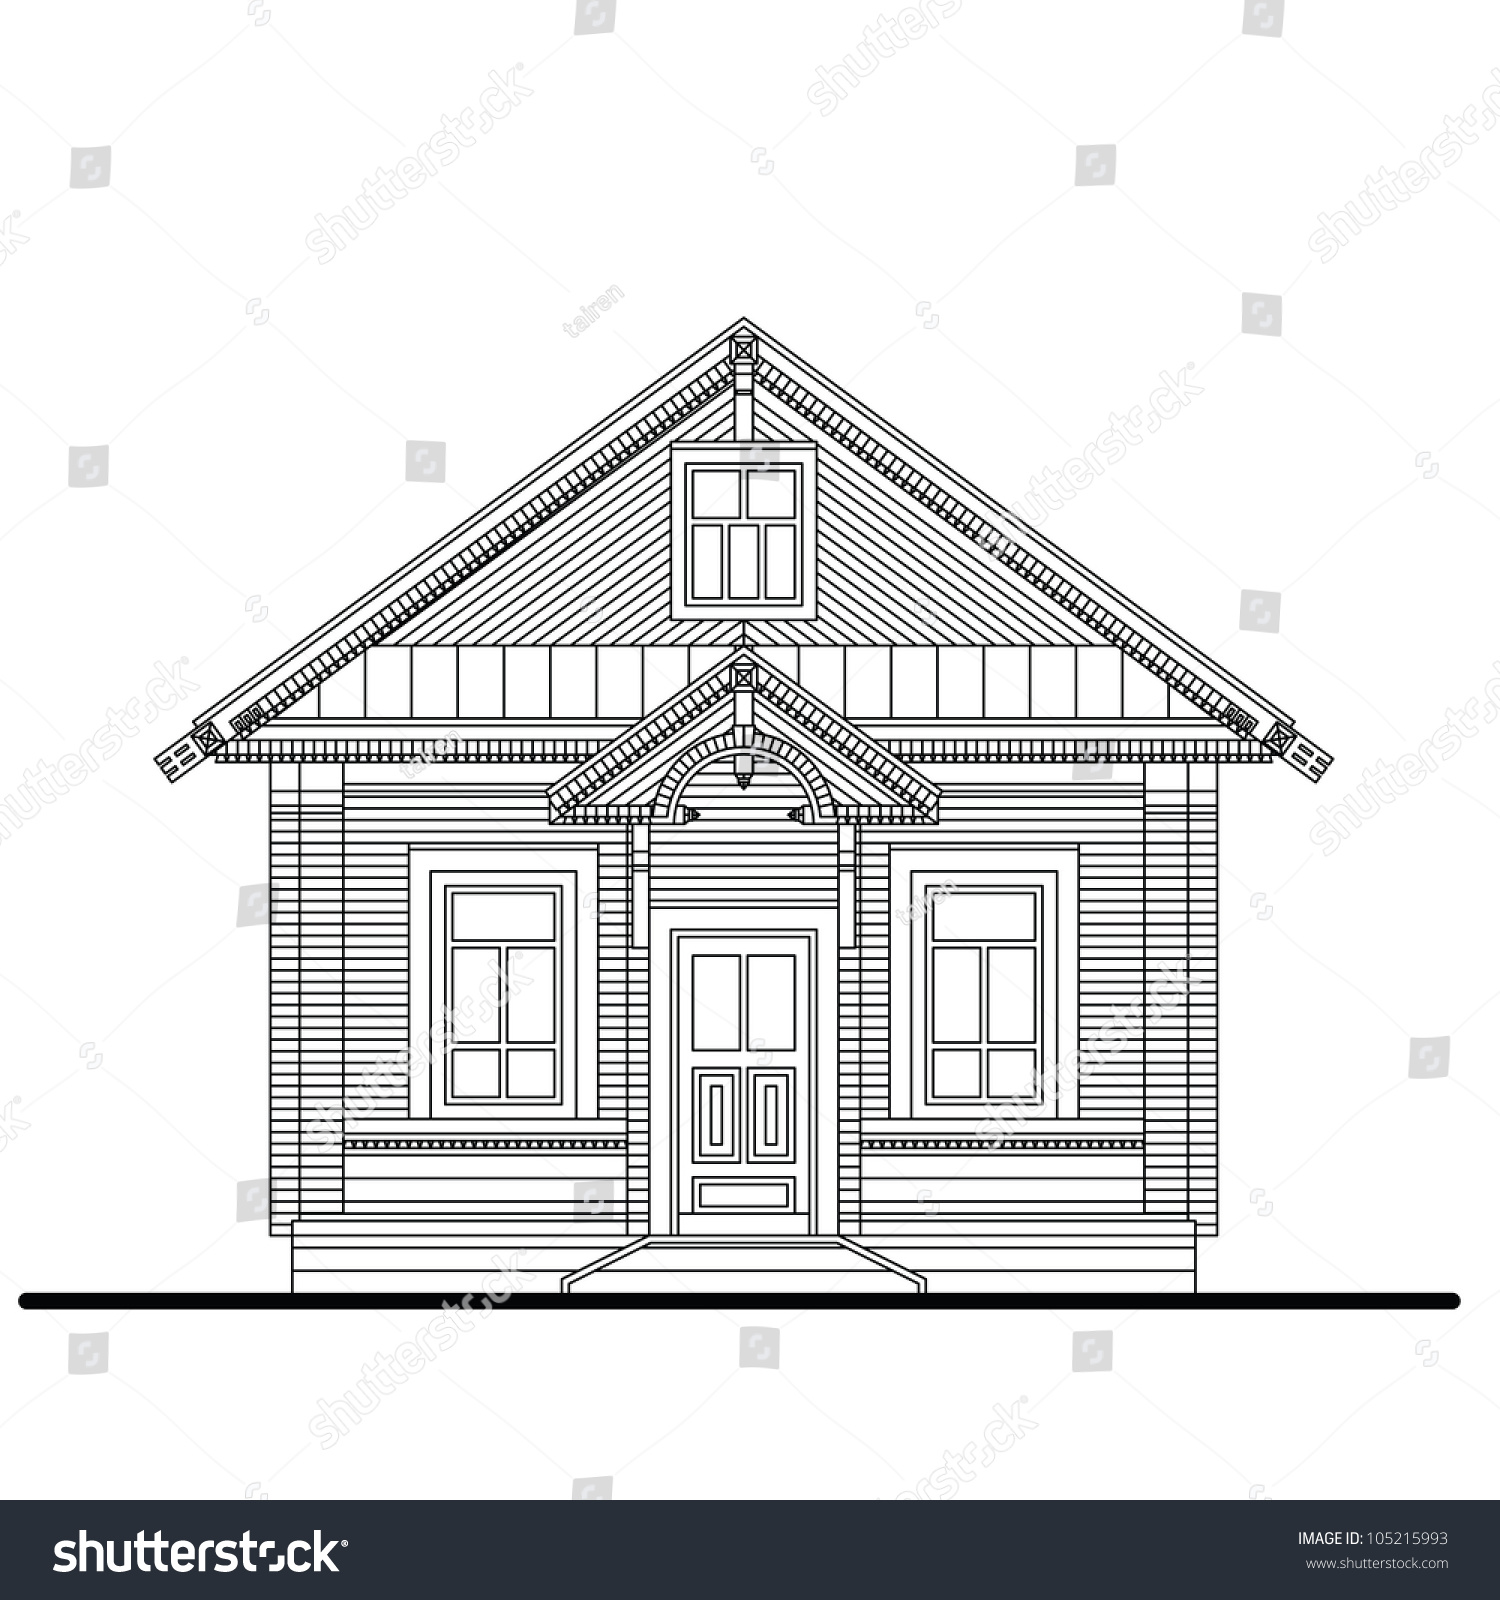 Drawing of a front facade of small wooden house with entrance